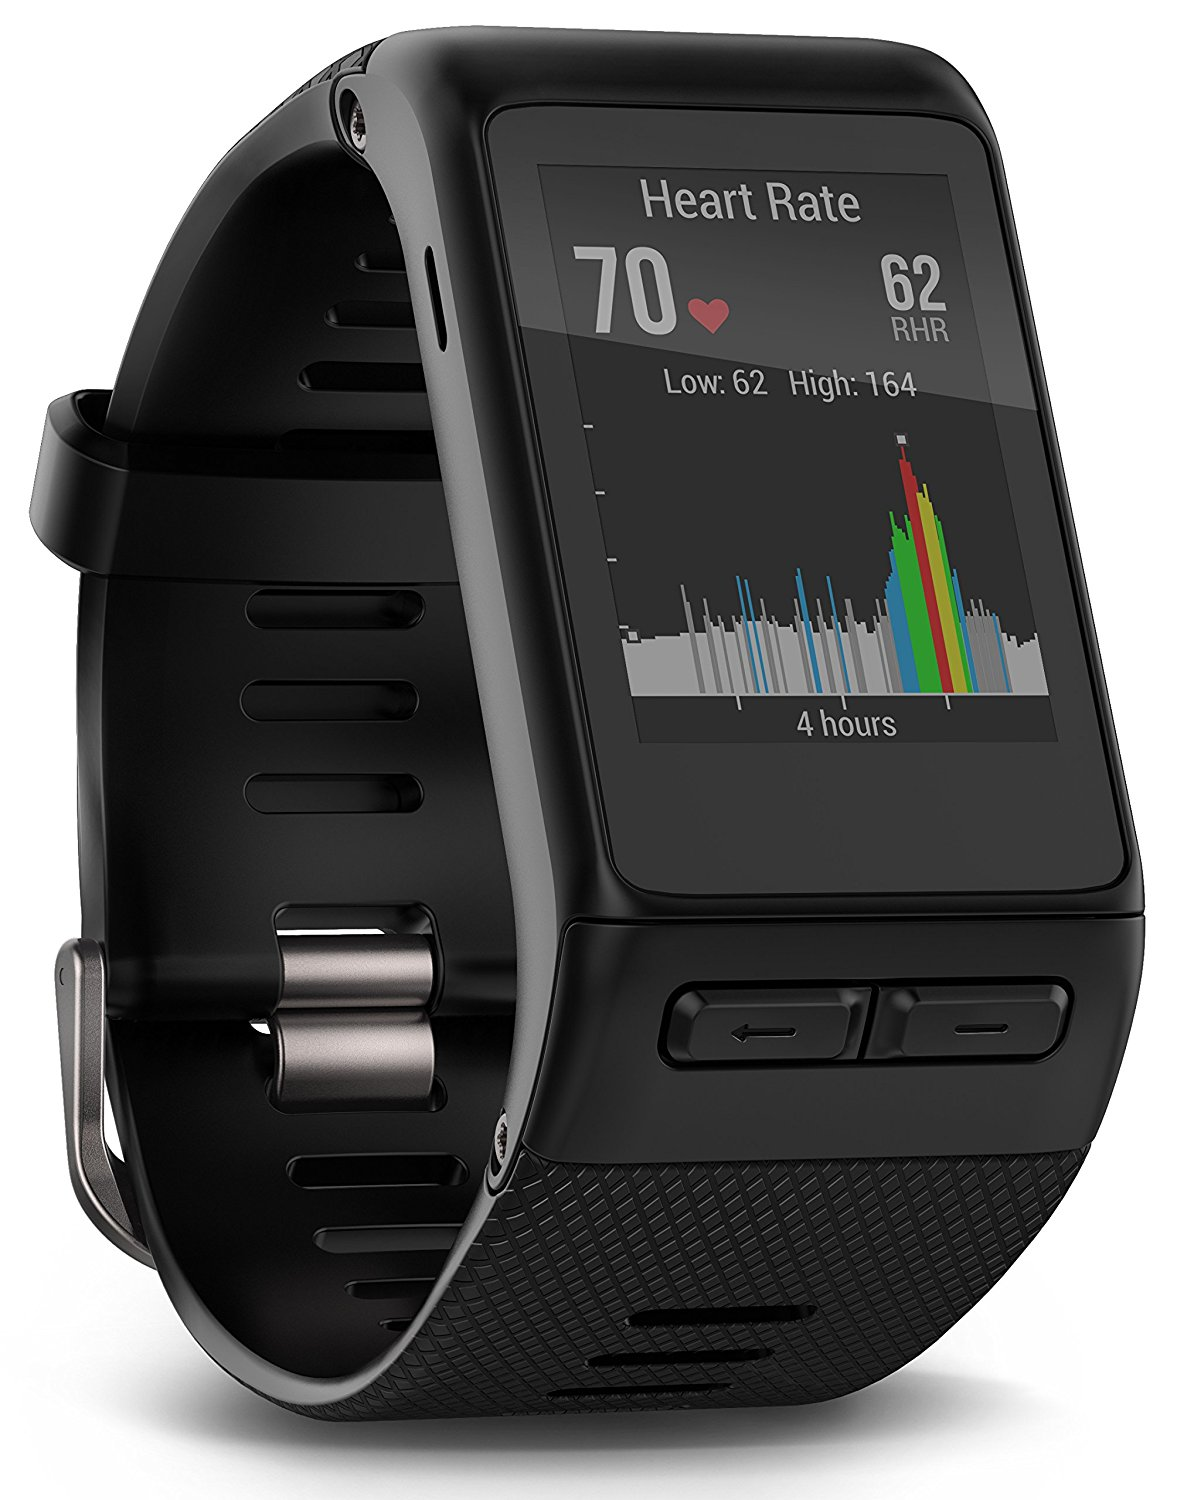 Monitor your heart rate without a chest strap